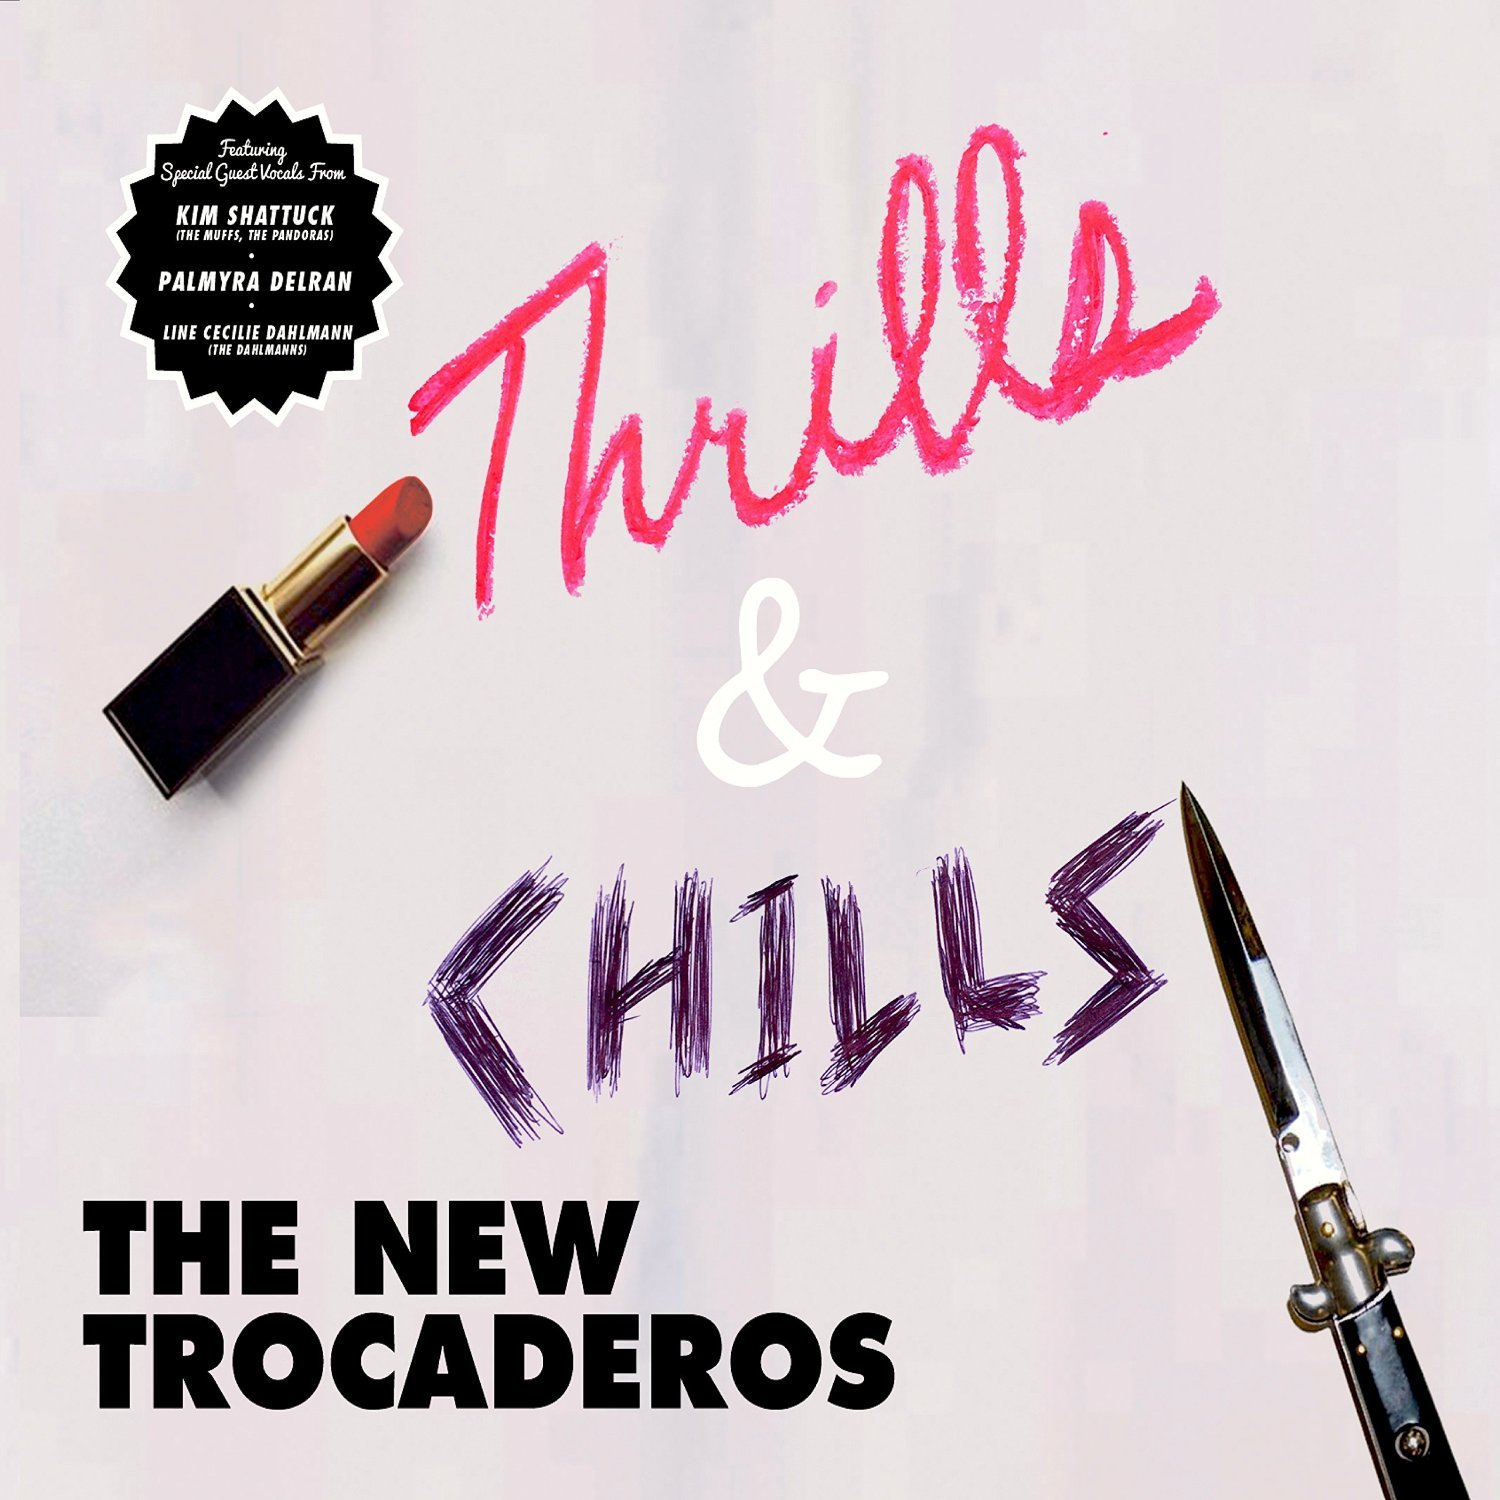 Thrills & Chills Cover art